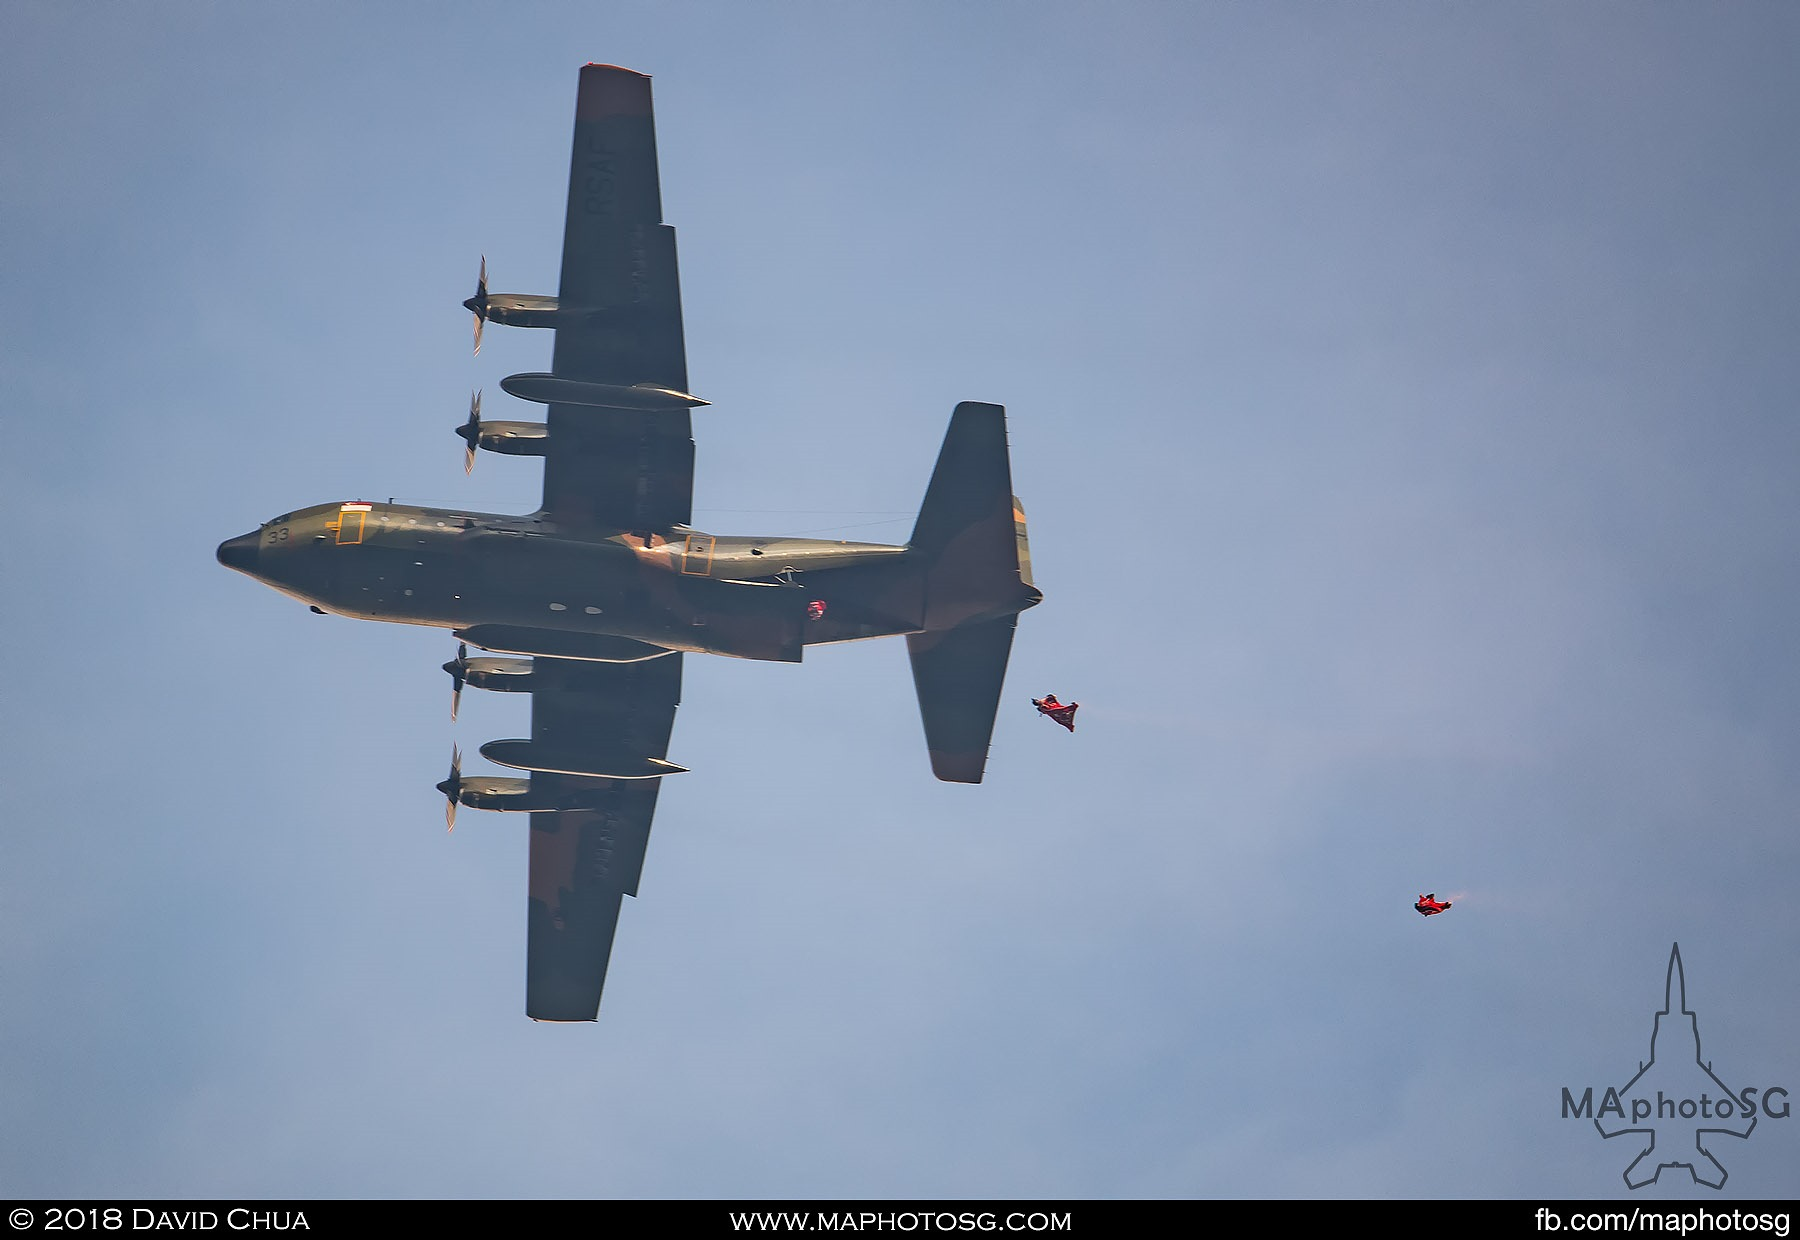 07. Red Lions deploying from a RSAF C-130H Hercules aircraft at 3800m performing a wingsuit jump.